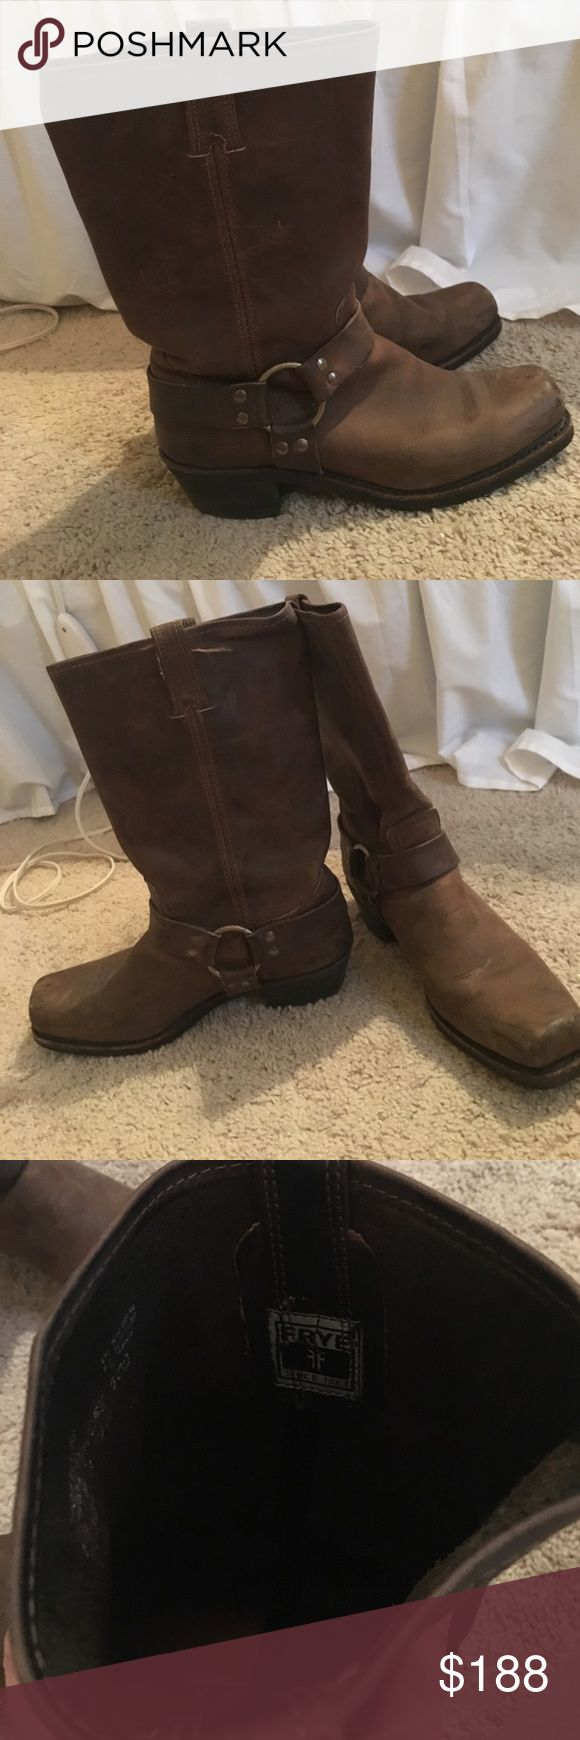 Frye Harness boots Perfect condition Frye Harness boots! Worn maybe 4 times! Frye Shoes Heeled Boots